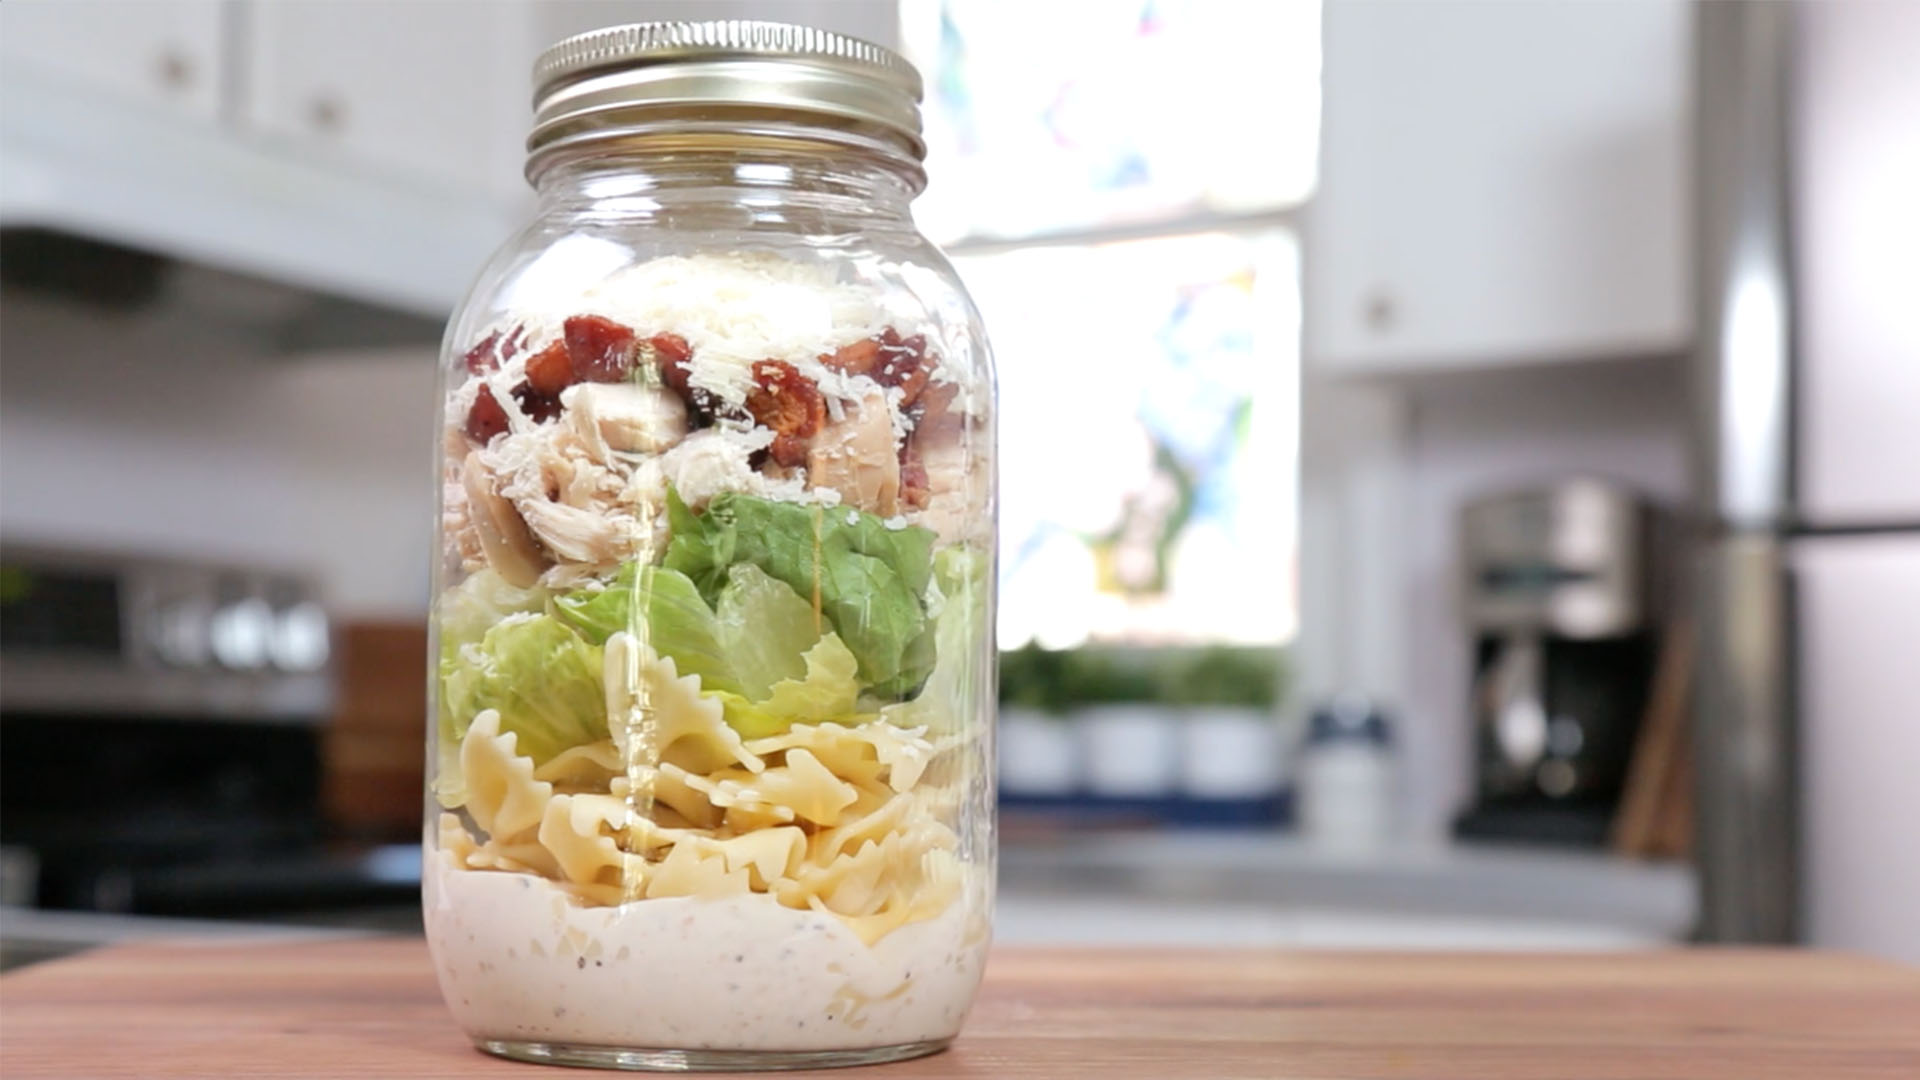 Caesar-Pasta-Salad-In-A-Jar 16x9